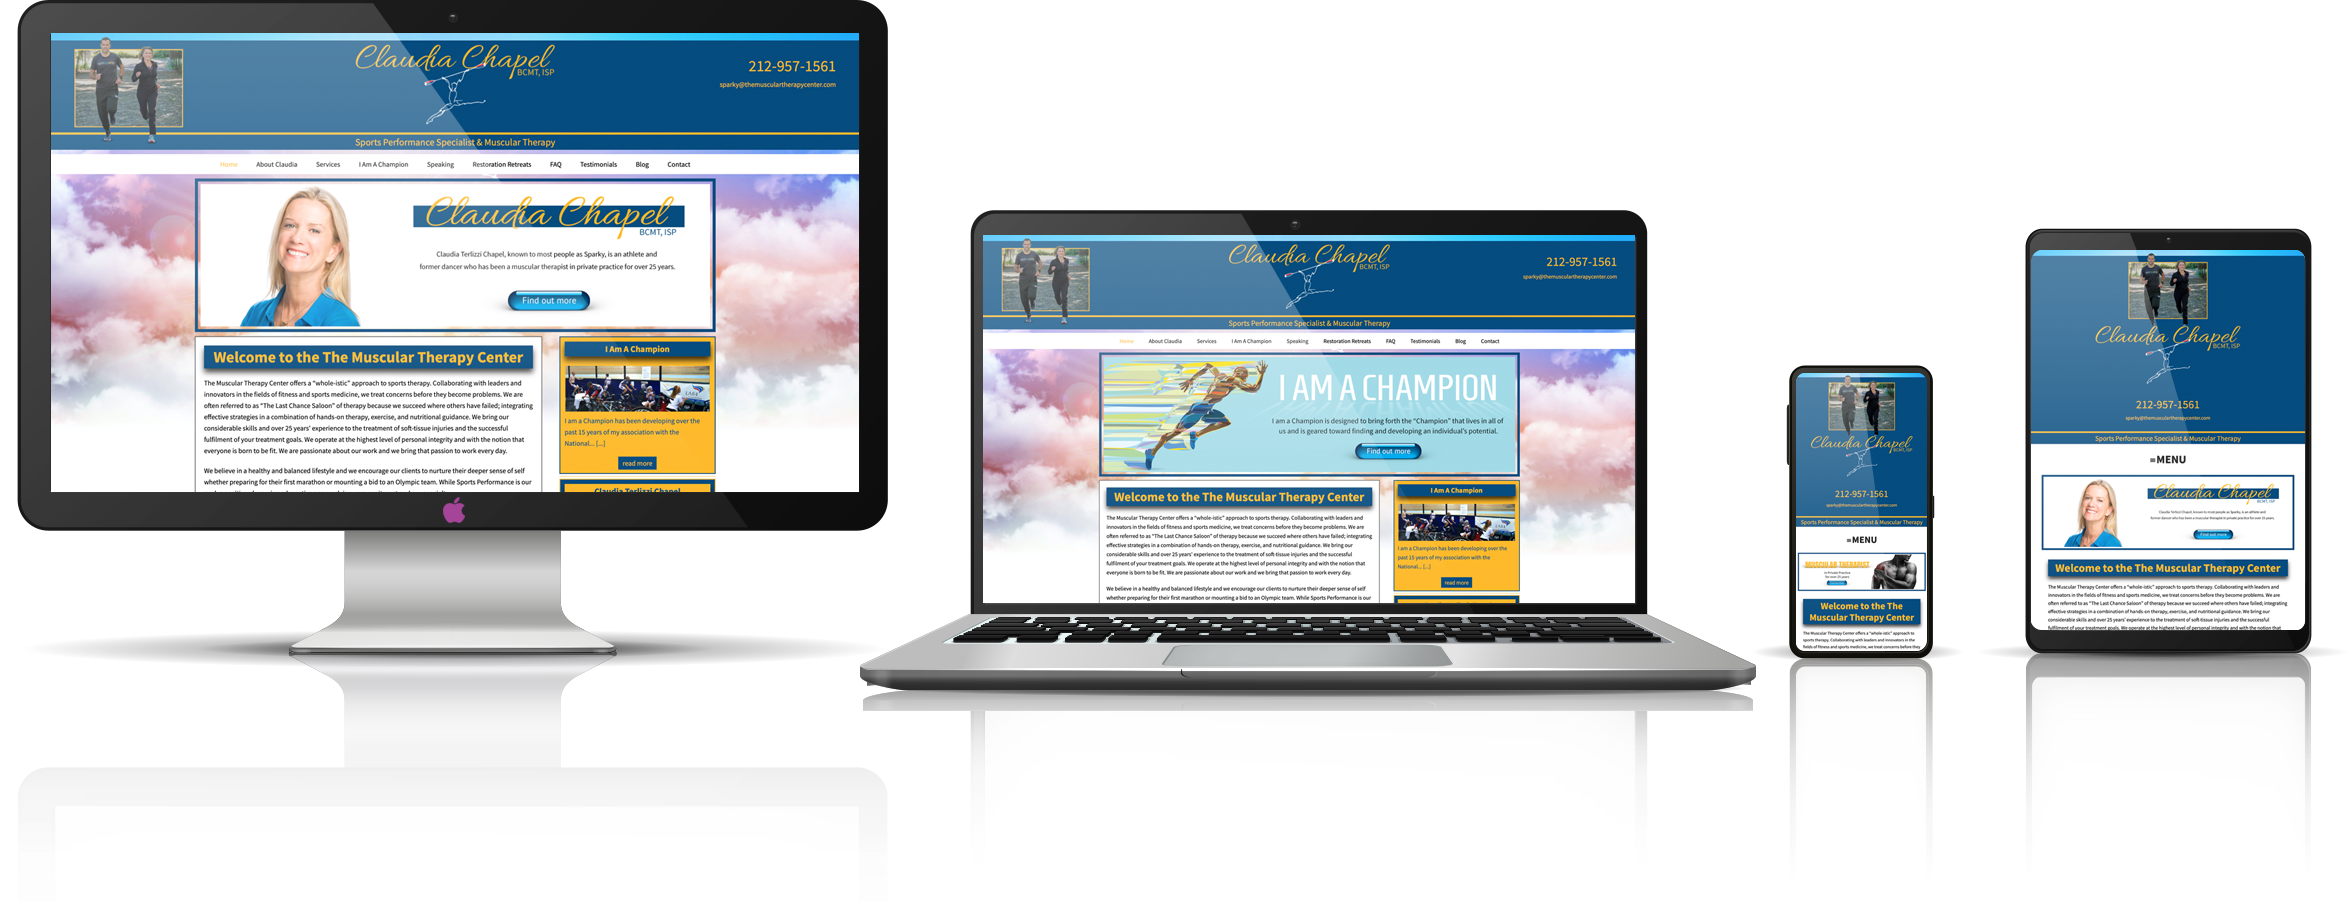 The Muscular Therapy Center fully responsive mock-up images showing desktop, laptop, tablet, and mobile phone devices.